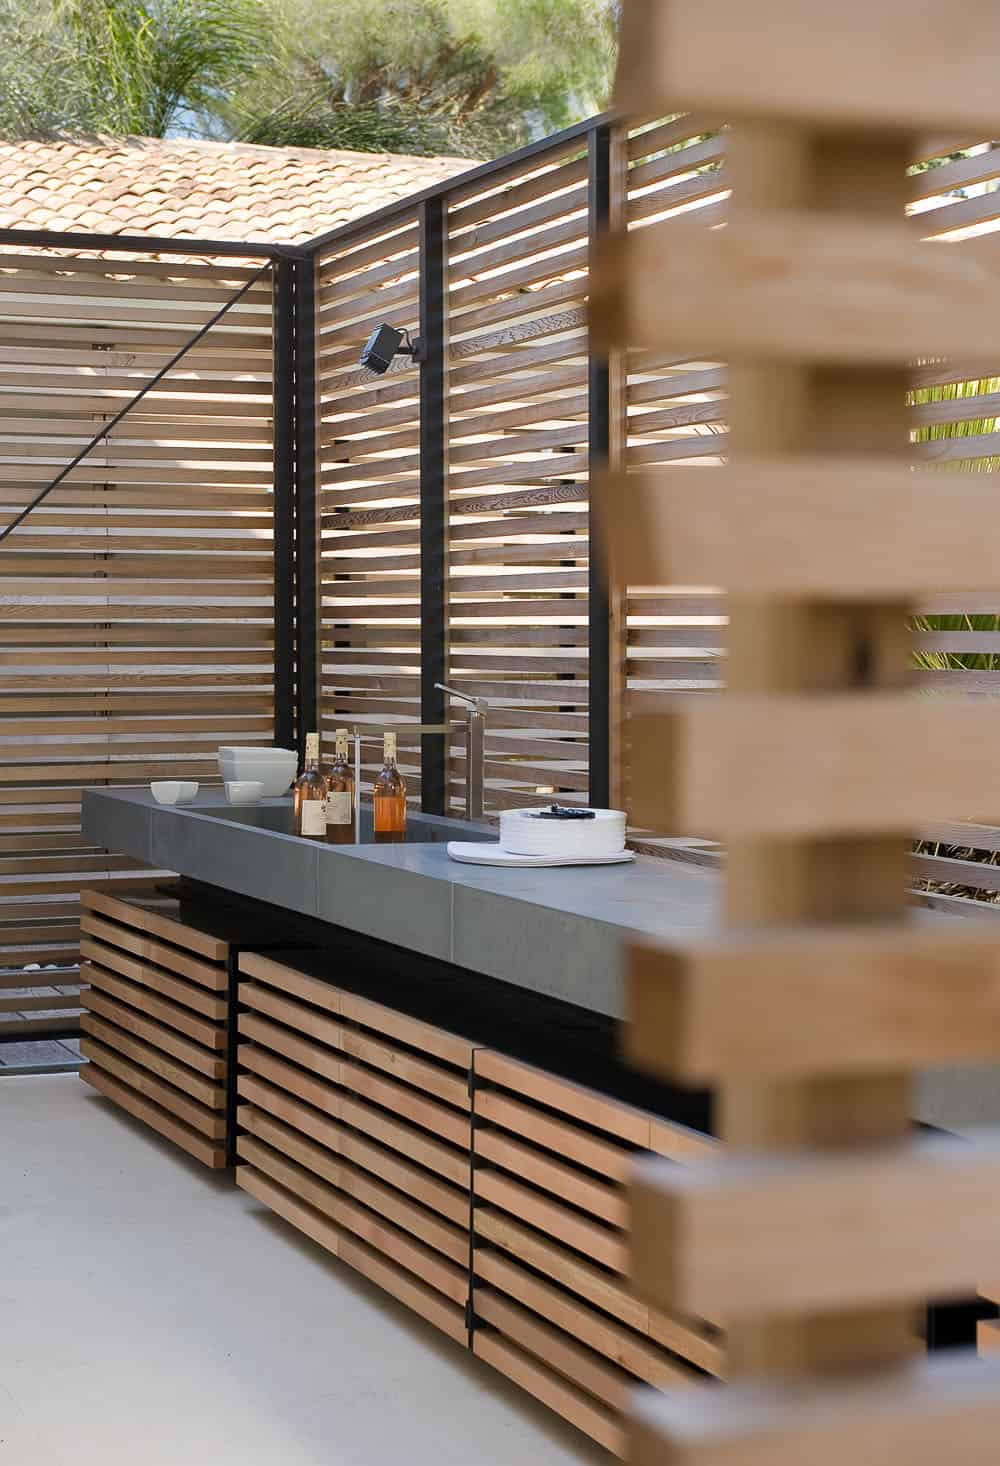 Screened wooden kitchen